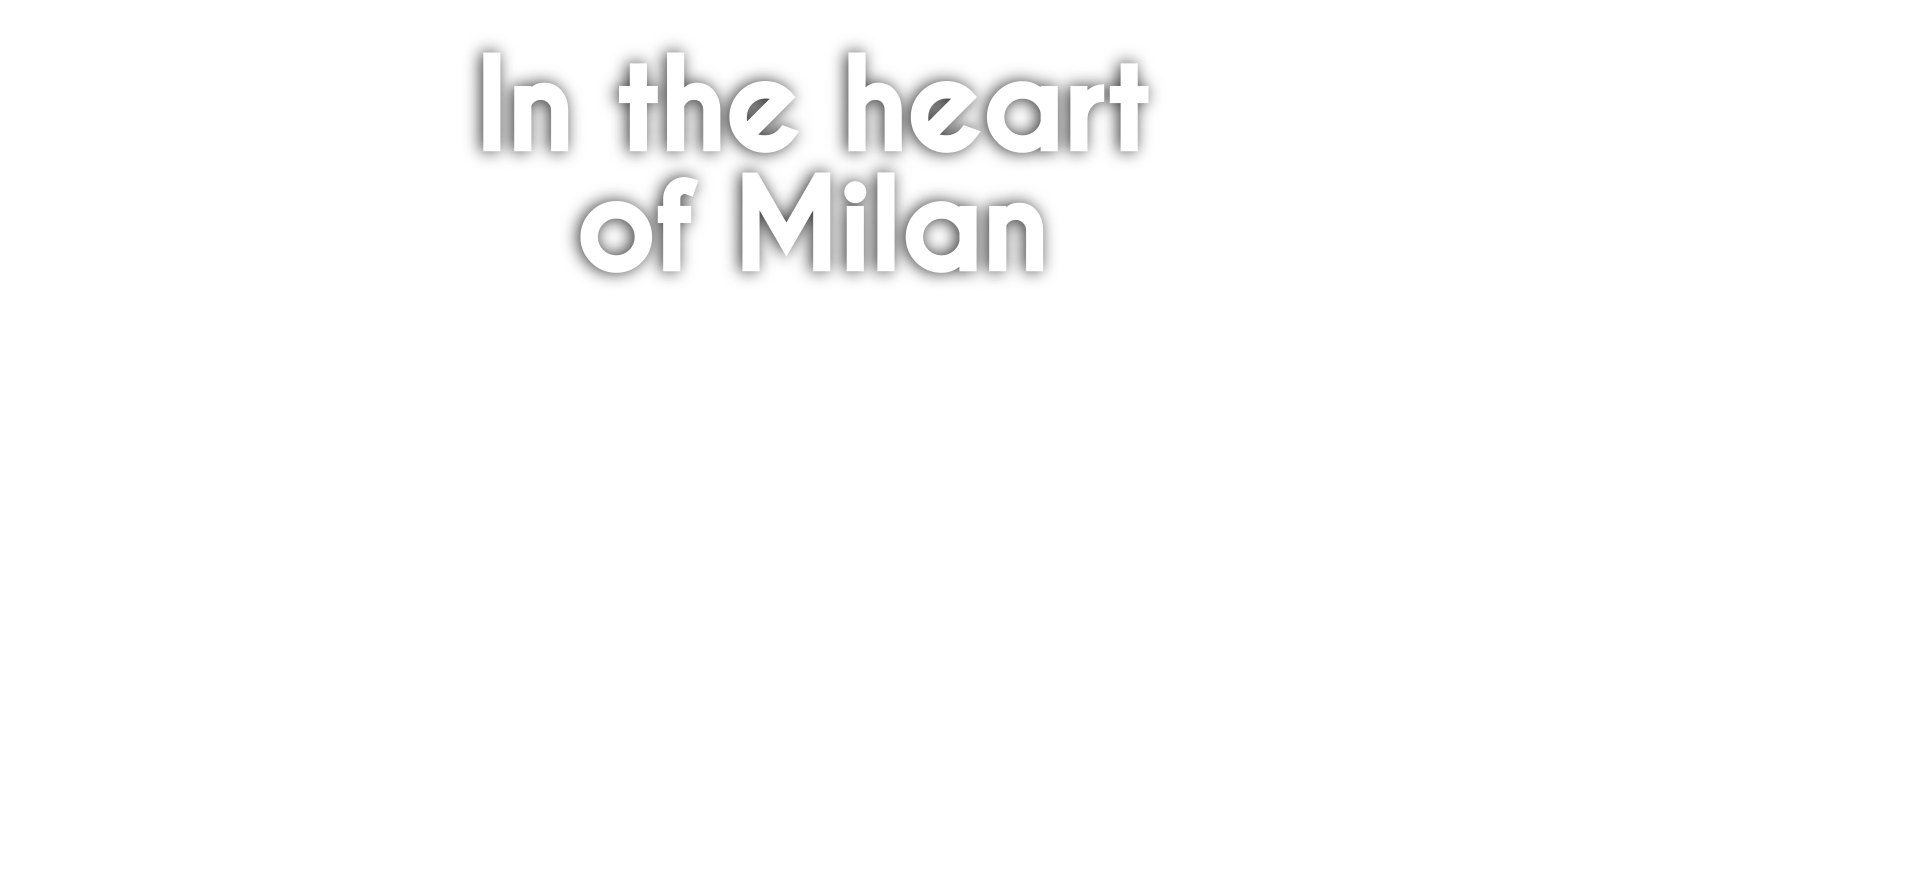 In the heart of Milan